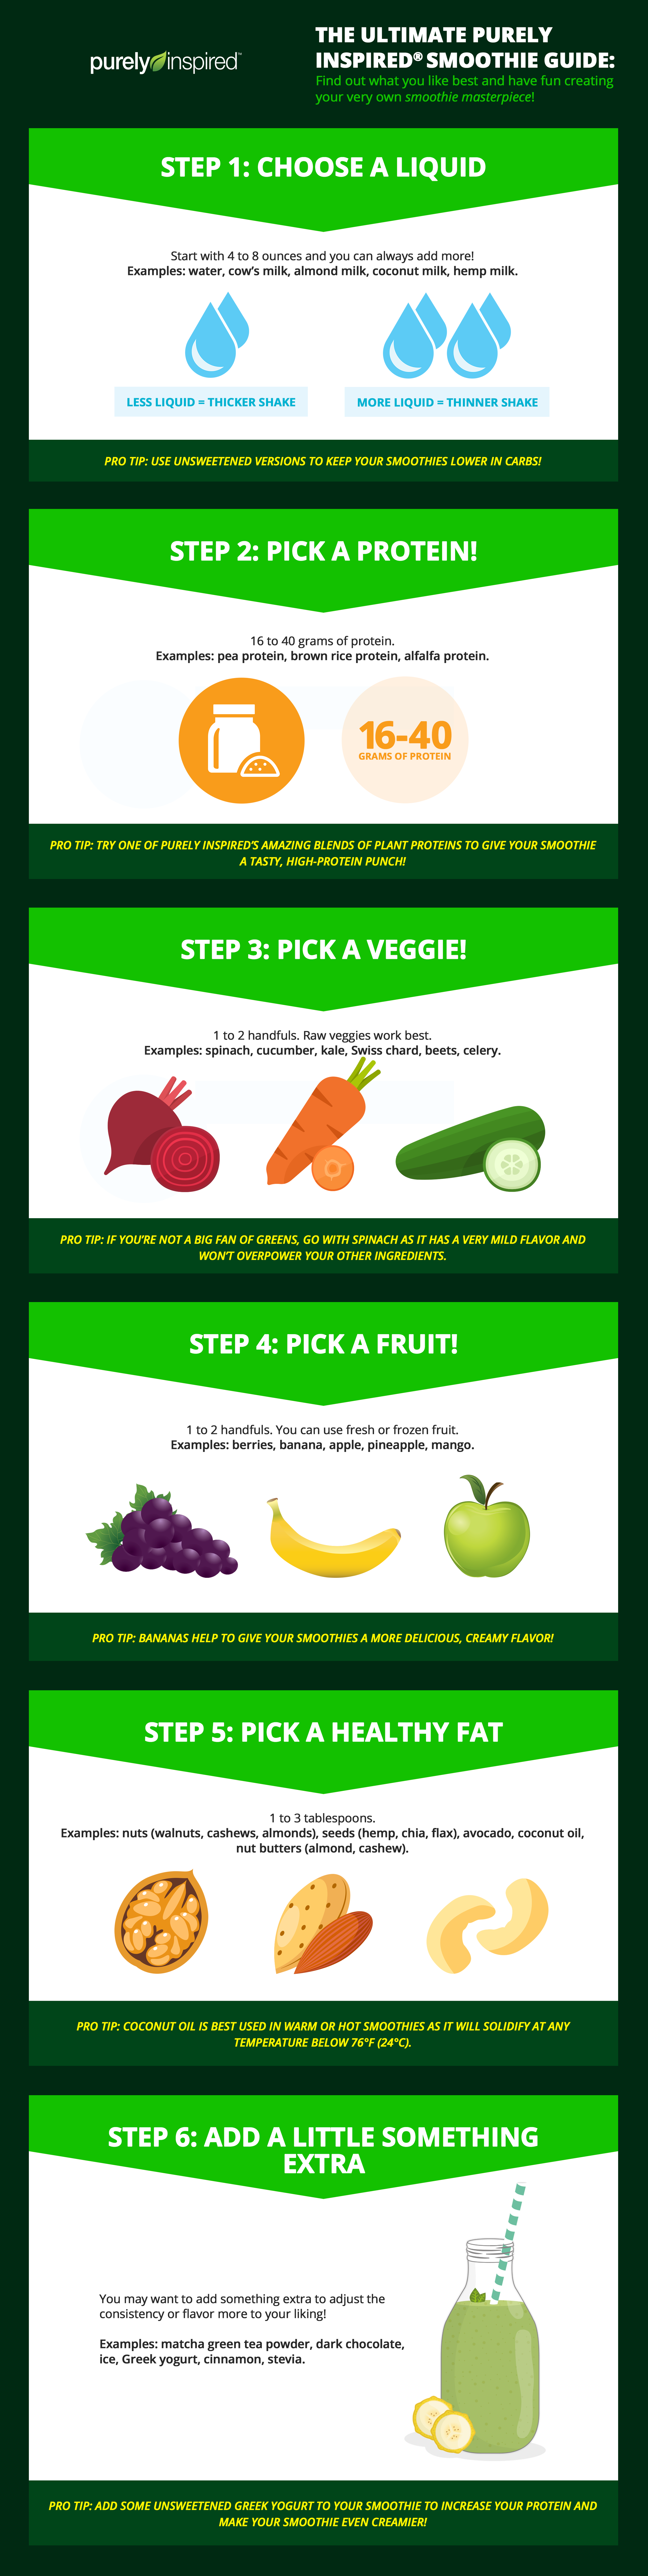 The Ultimate Purely Inspired Smoothie Guide